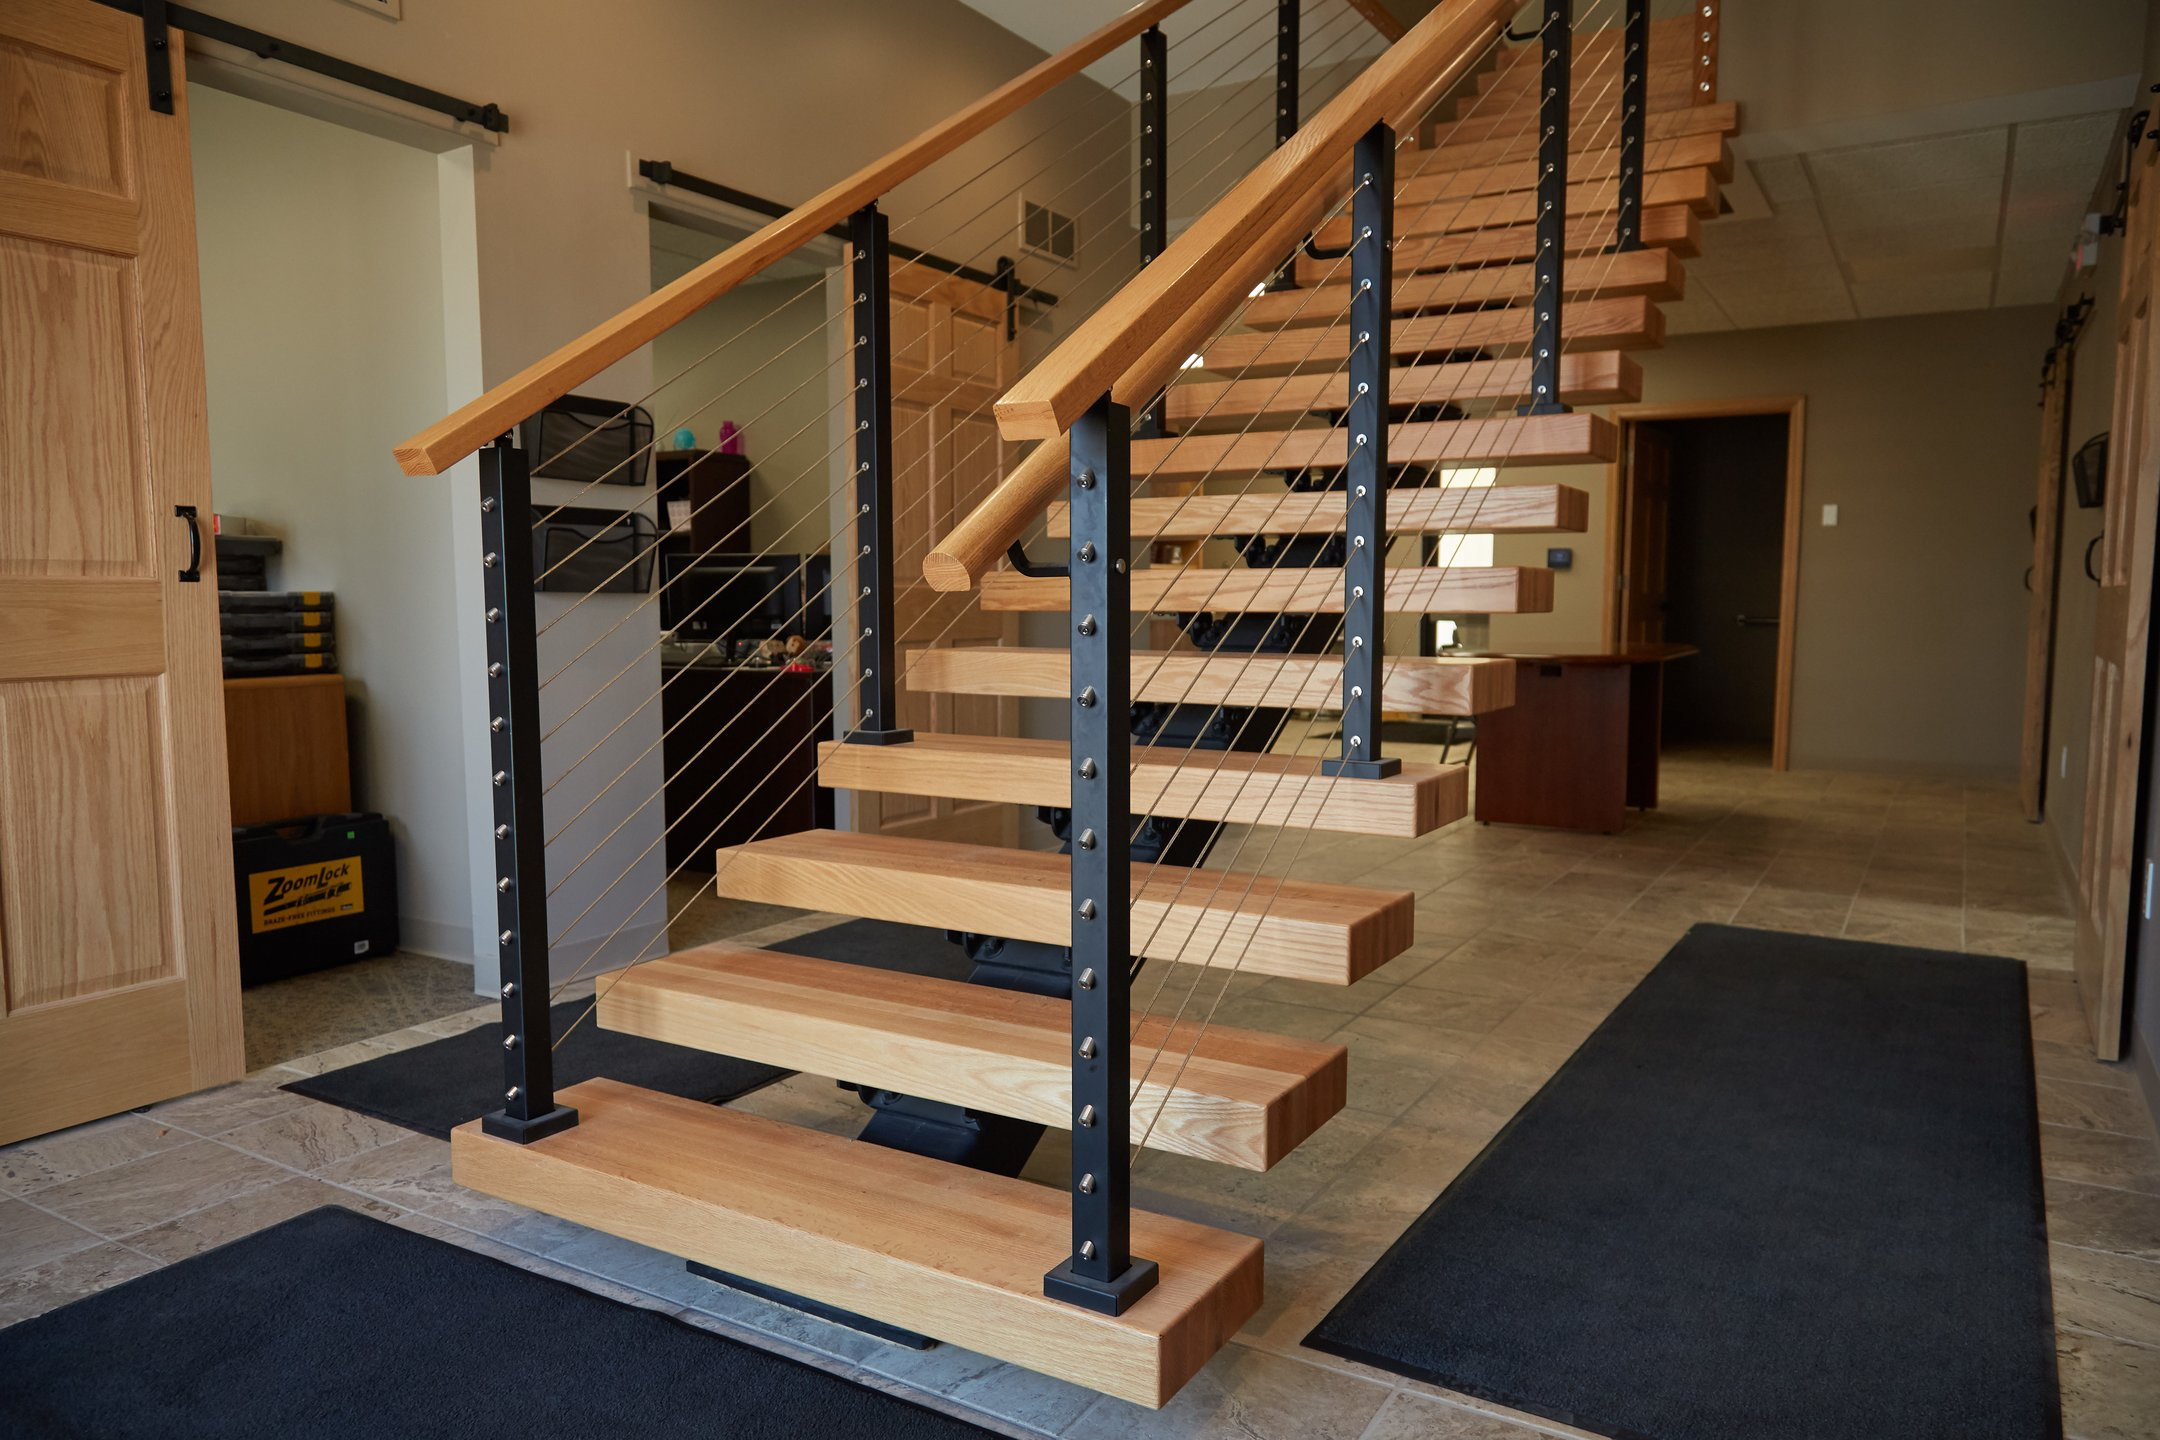 What Are Floating Stairs?